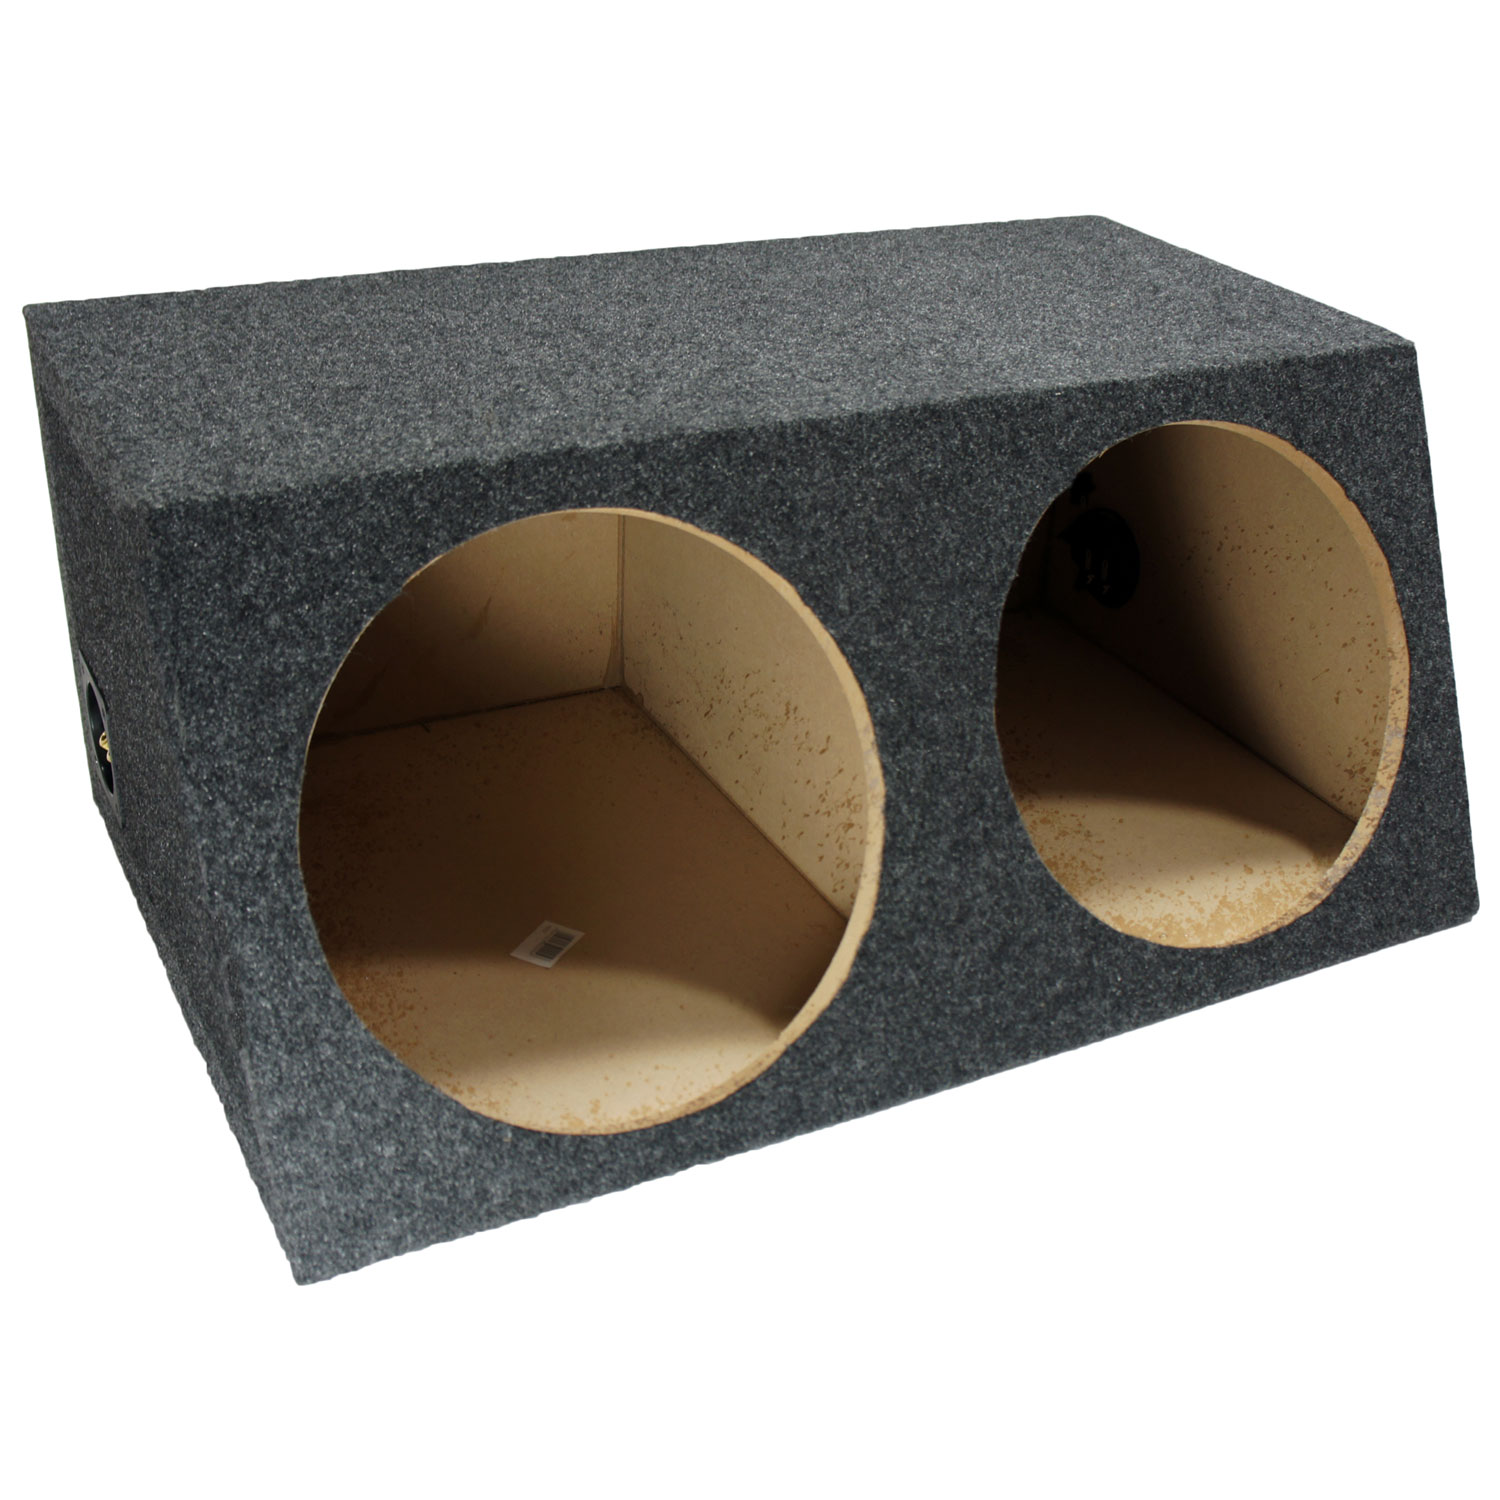 Sub Boxes Hatchback Dual 12  Subwoofer Unloaded Enclosure Box  sc 1 st  HiFi Sound Connection & Sub Boxes Hatchback Dual 12